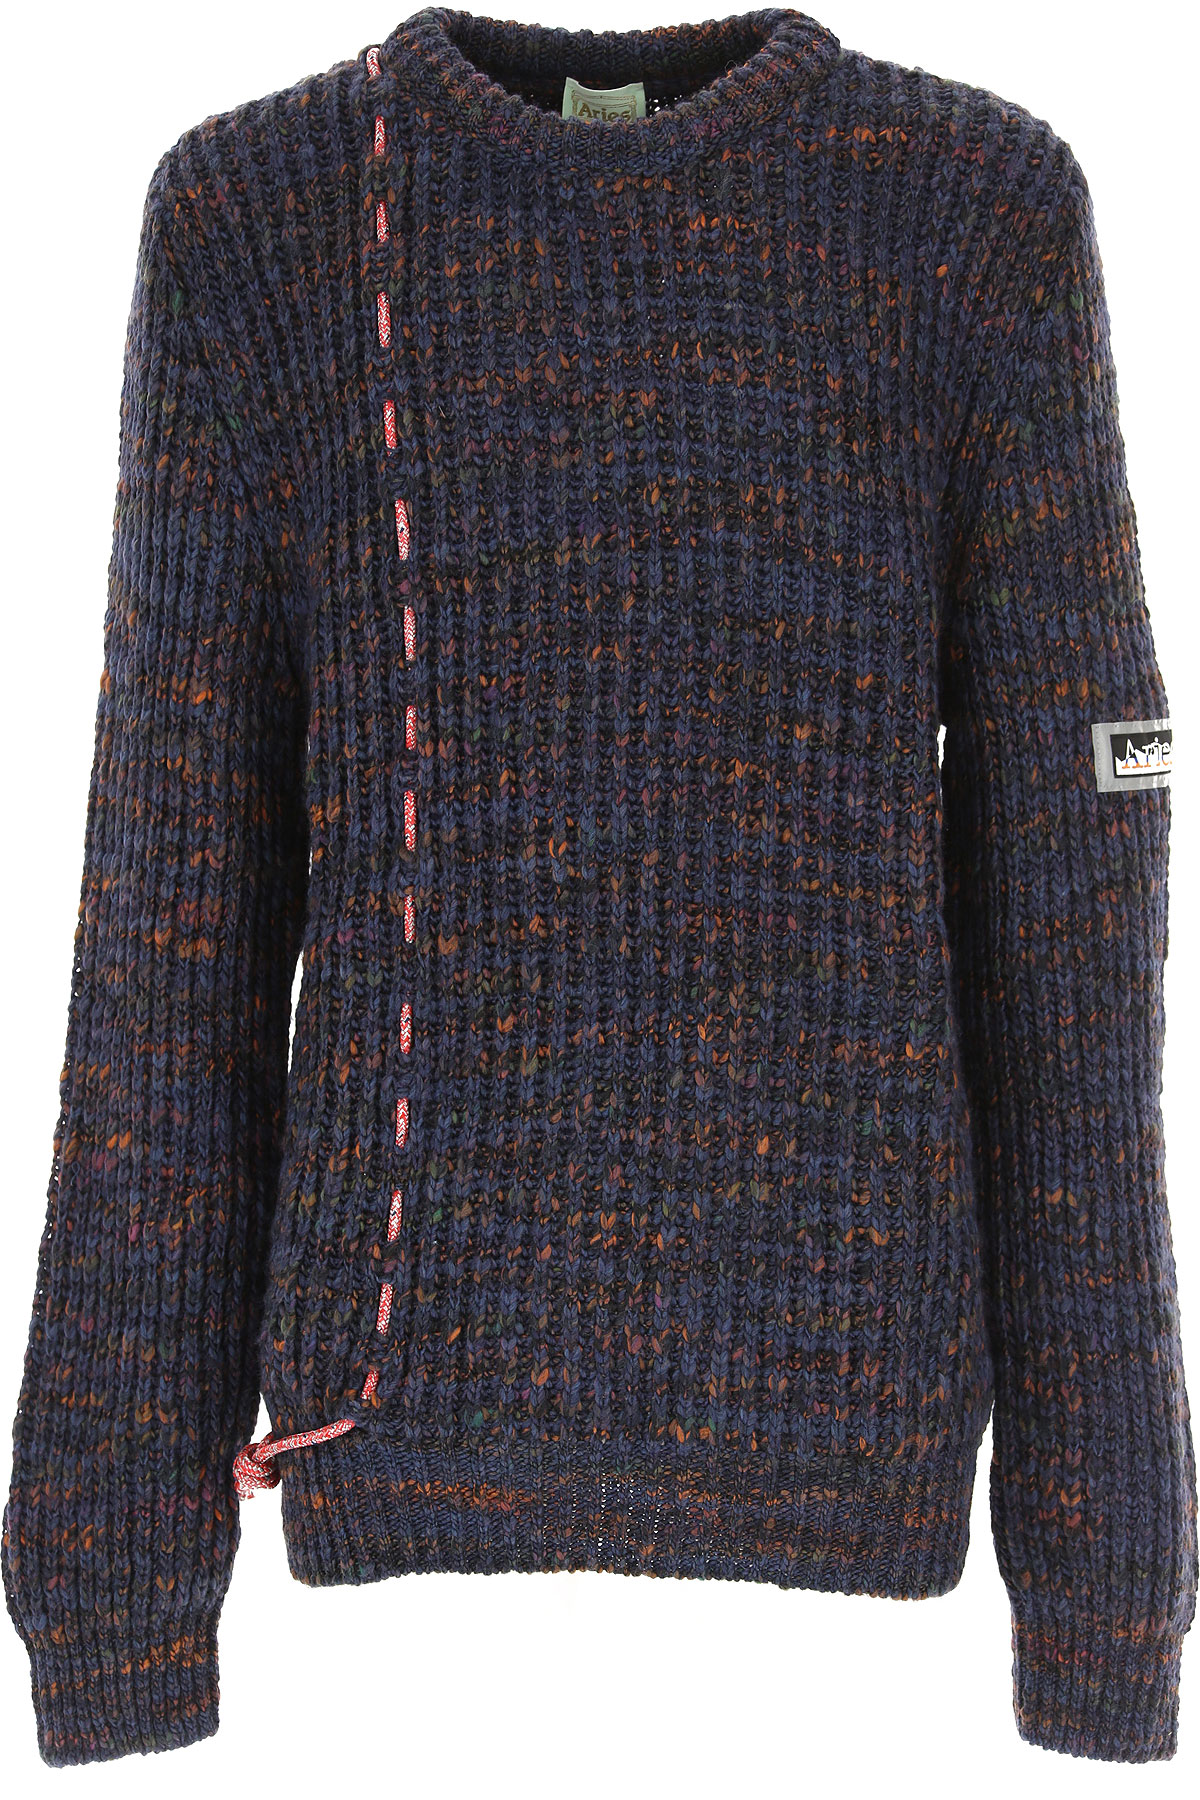 Aries Sweater for Men Jumper On Sale, Blue, Acrylic, 2019, L M S